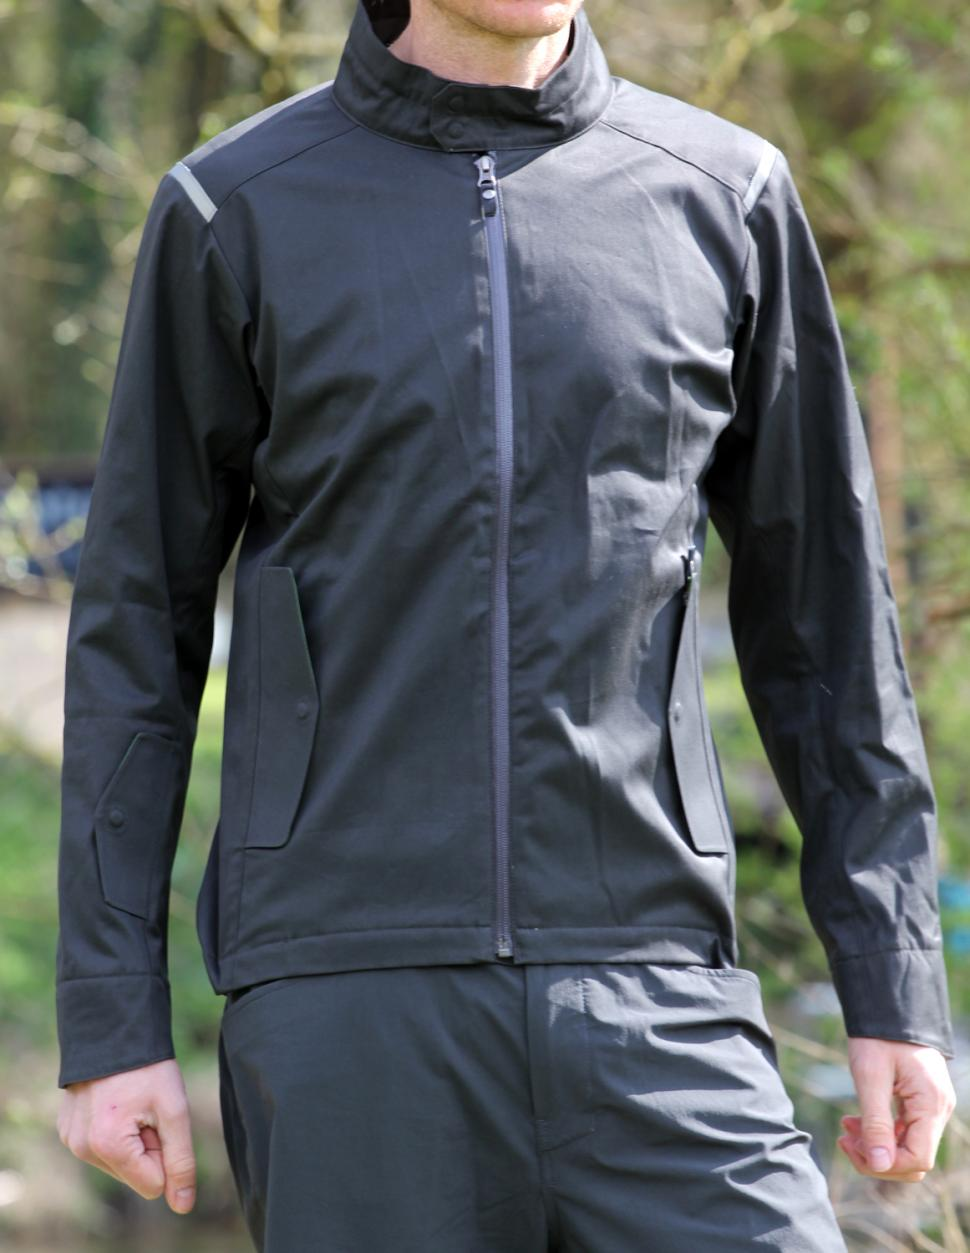 eb096f9e64b Review  Vulpine Cotton Rain jacket